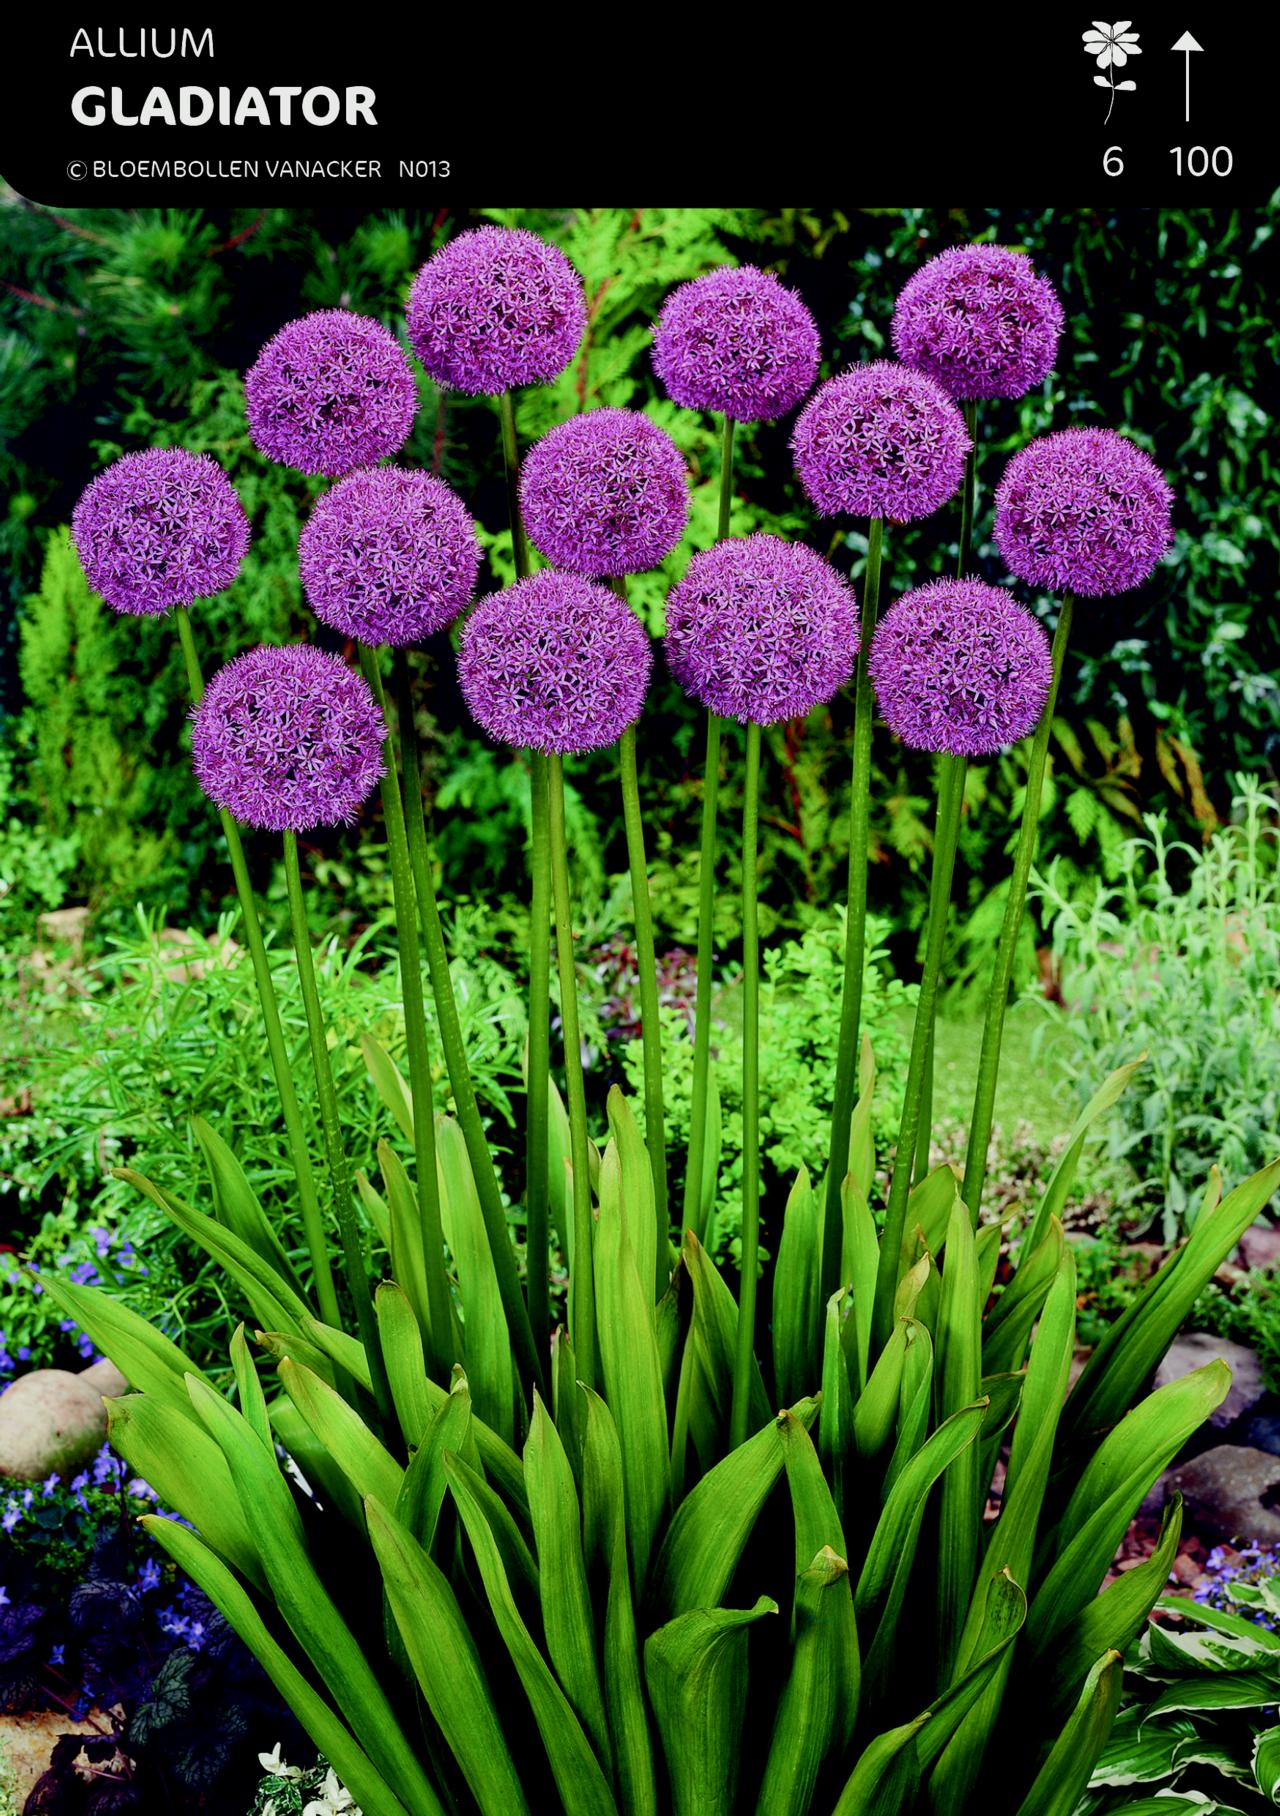 Allium 'Gladiator' plant